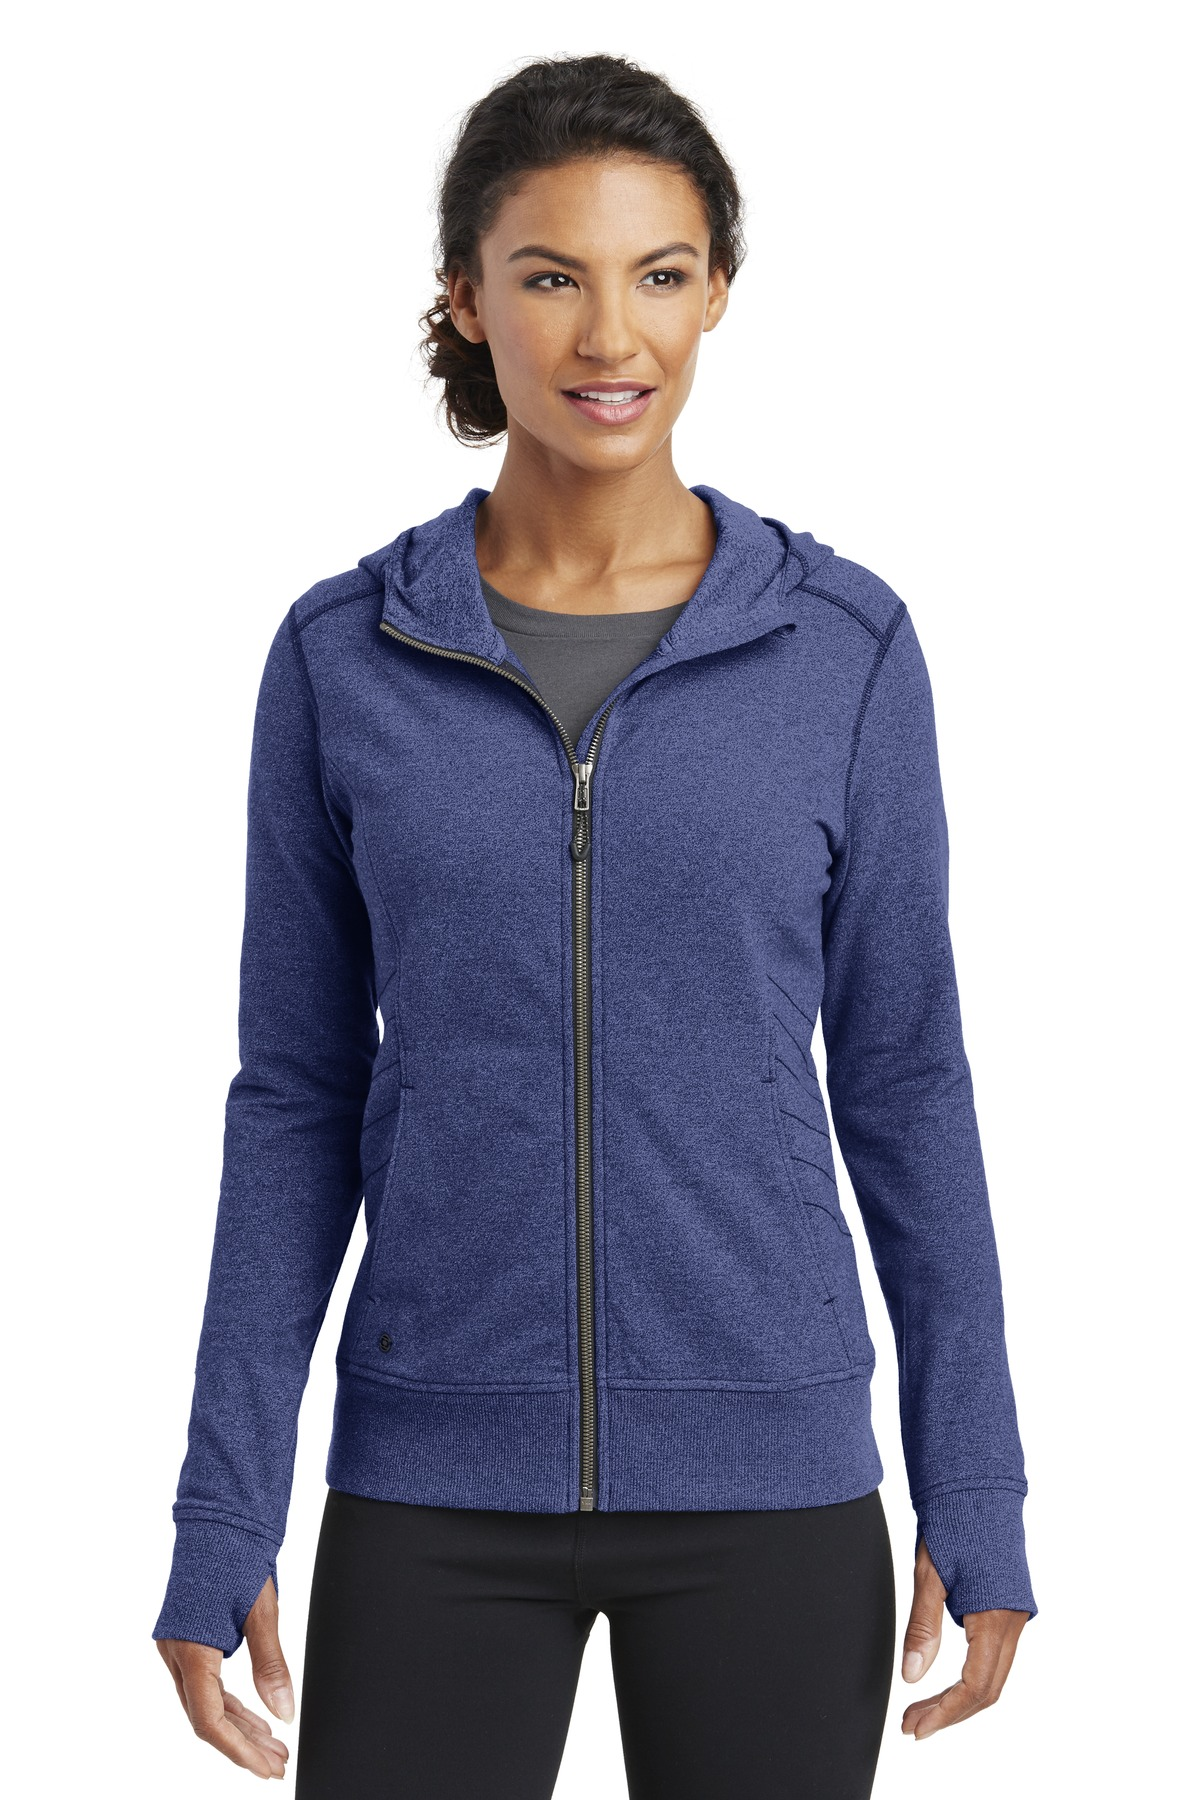 OGIO ®  ENDURANCE Ladies Cadmium Jacket. LOE502 - Blueprint